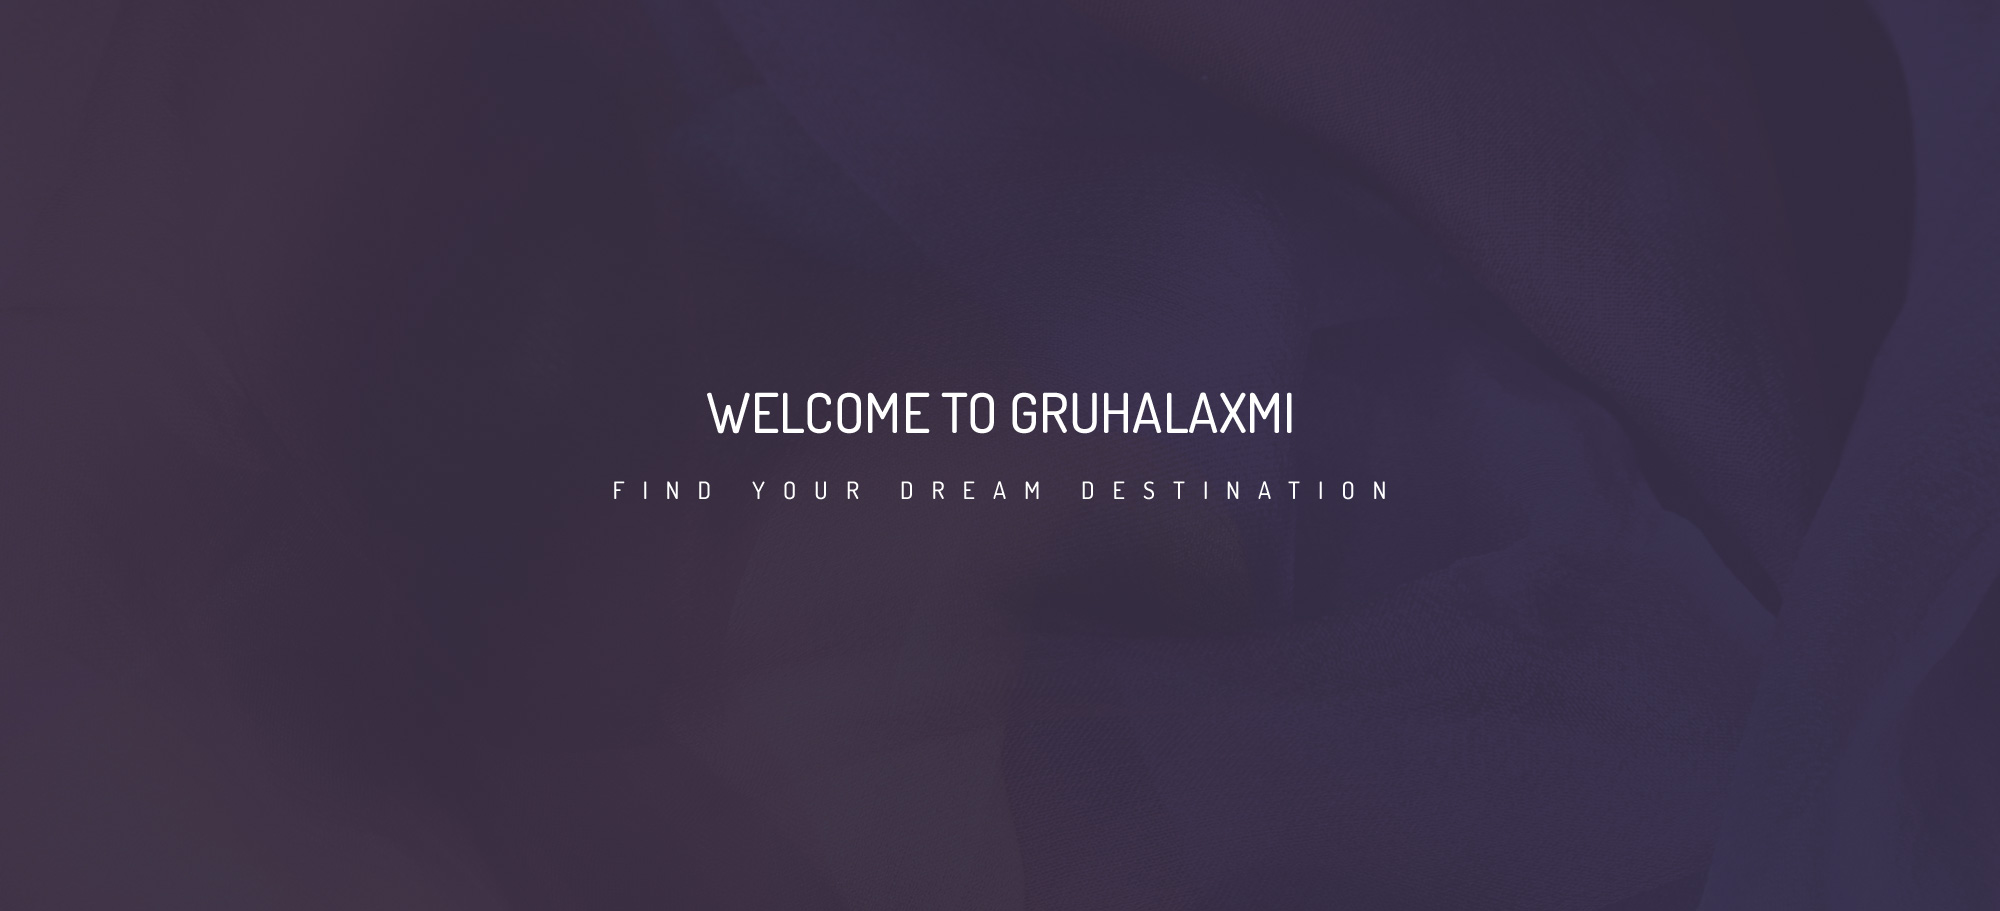 WELCOME TO GRUHALAXMI